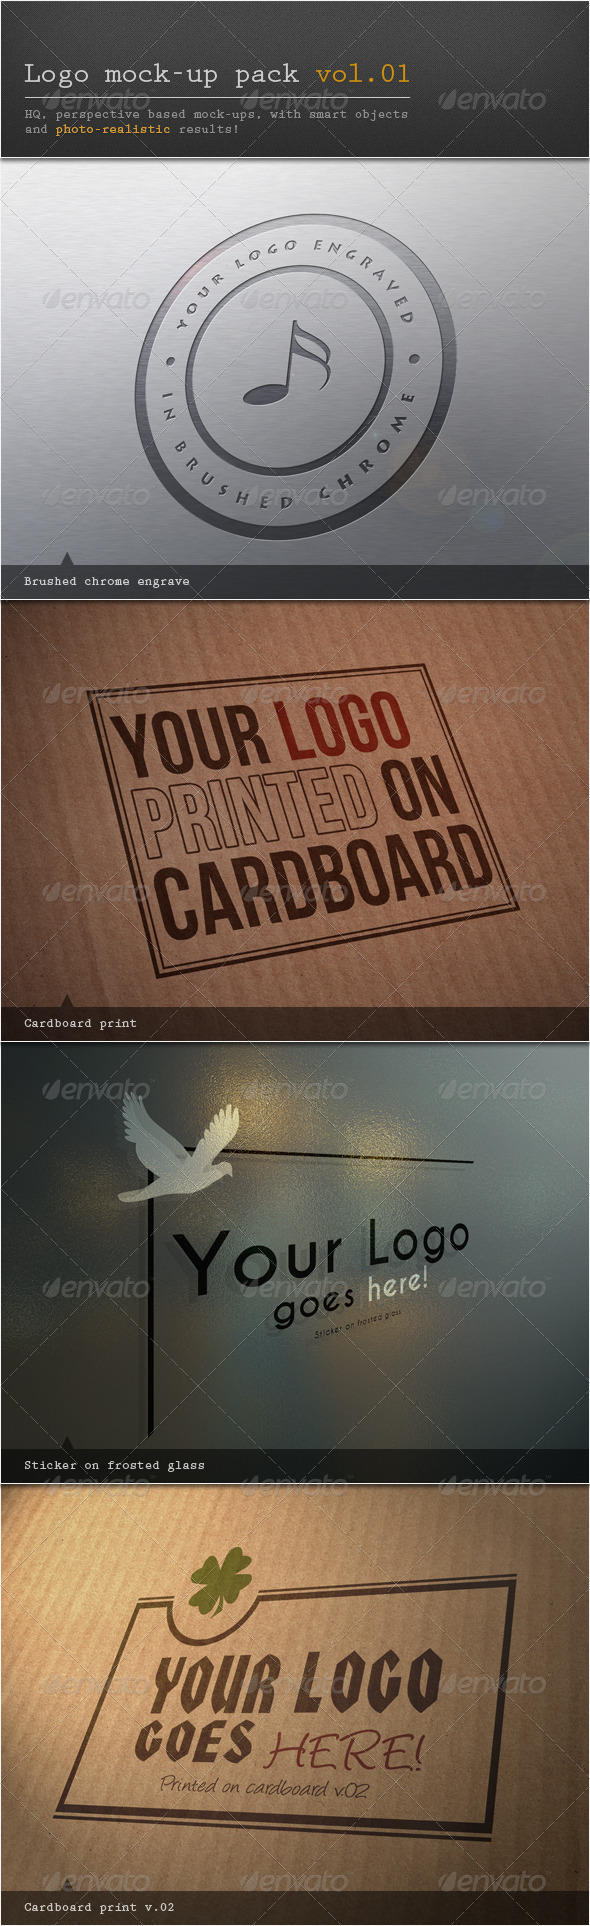 Logo Mock-up Pack Vol.01 - Logo Product Mock-Ups